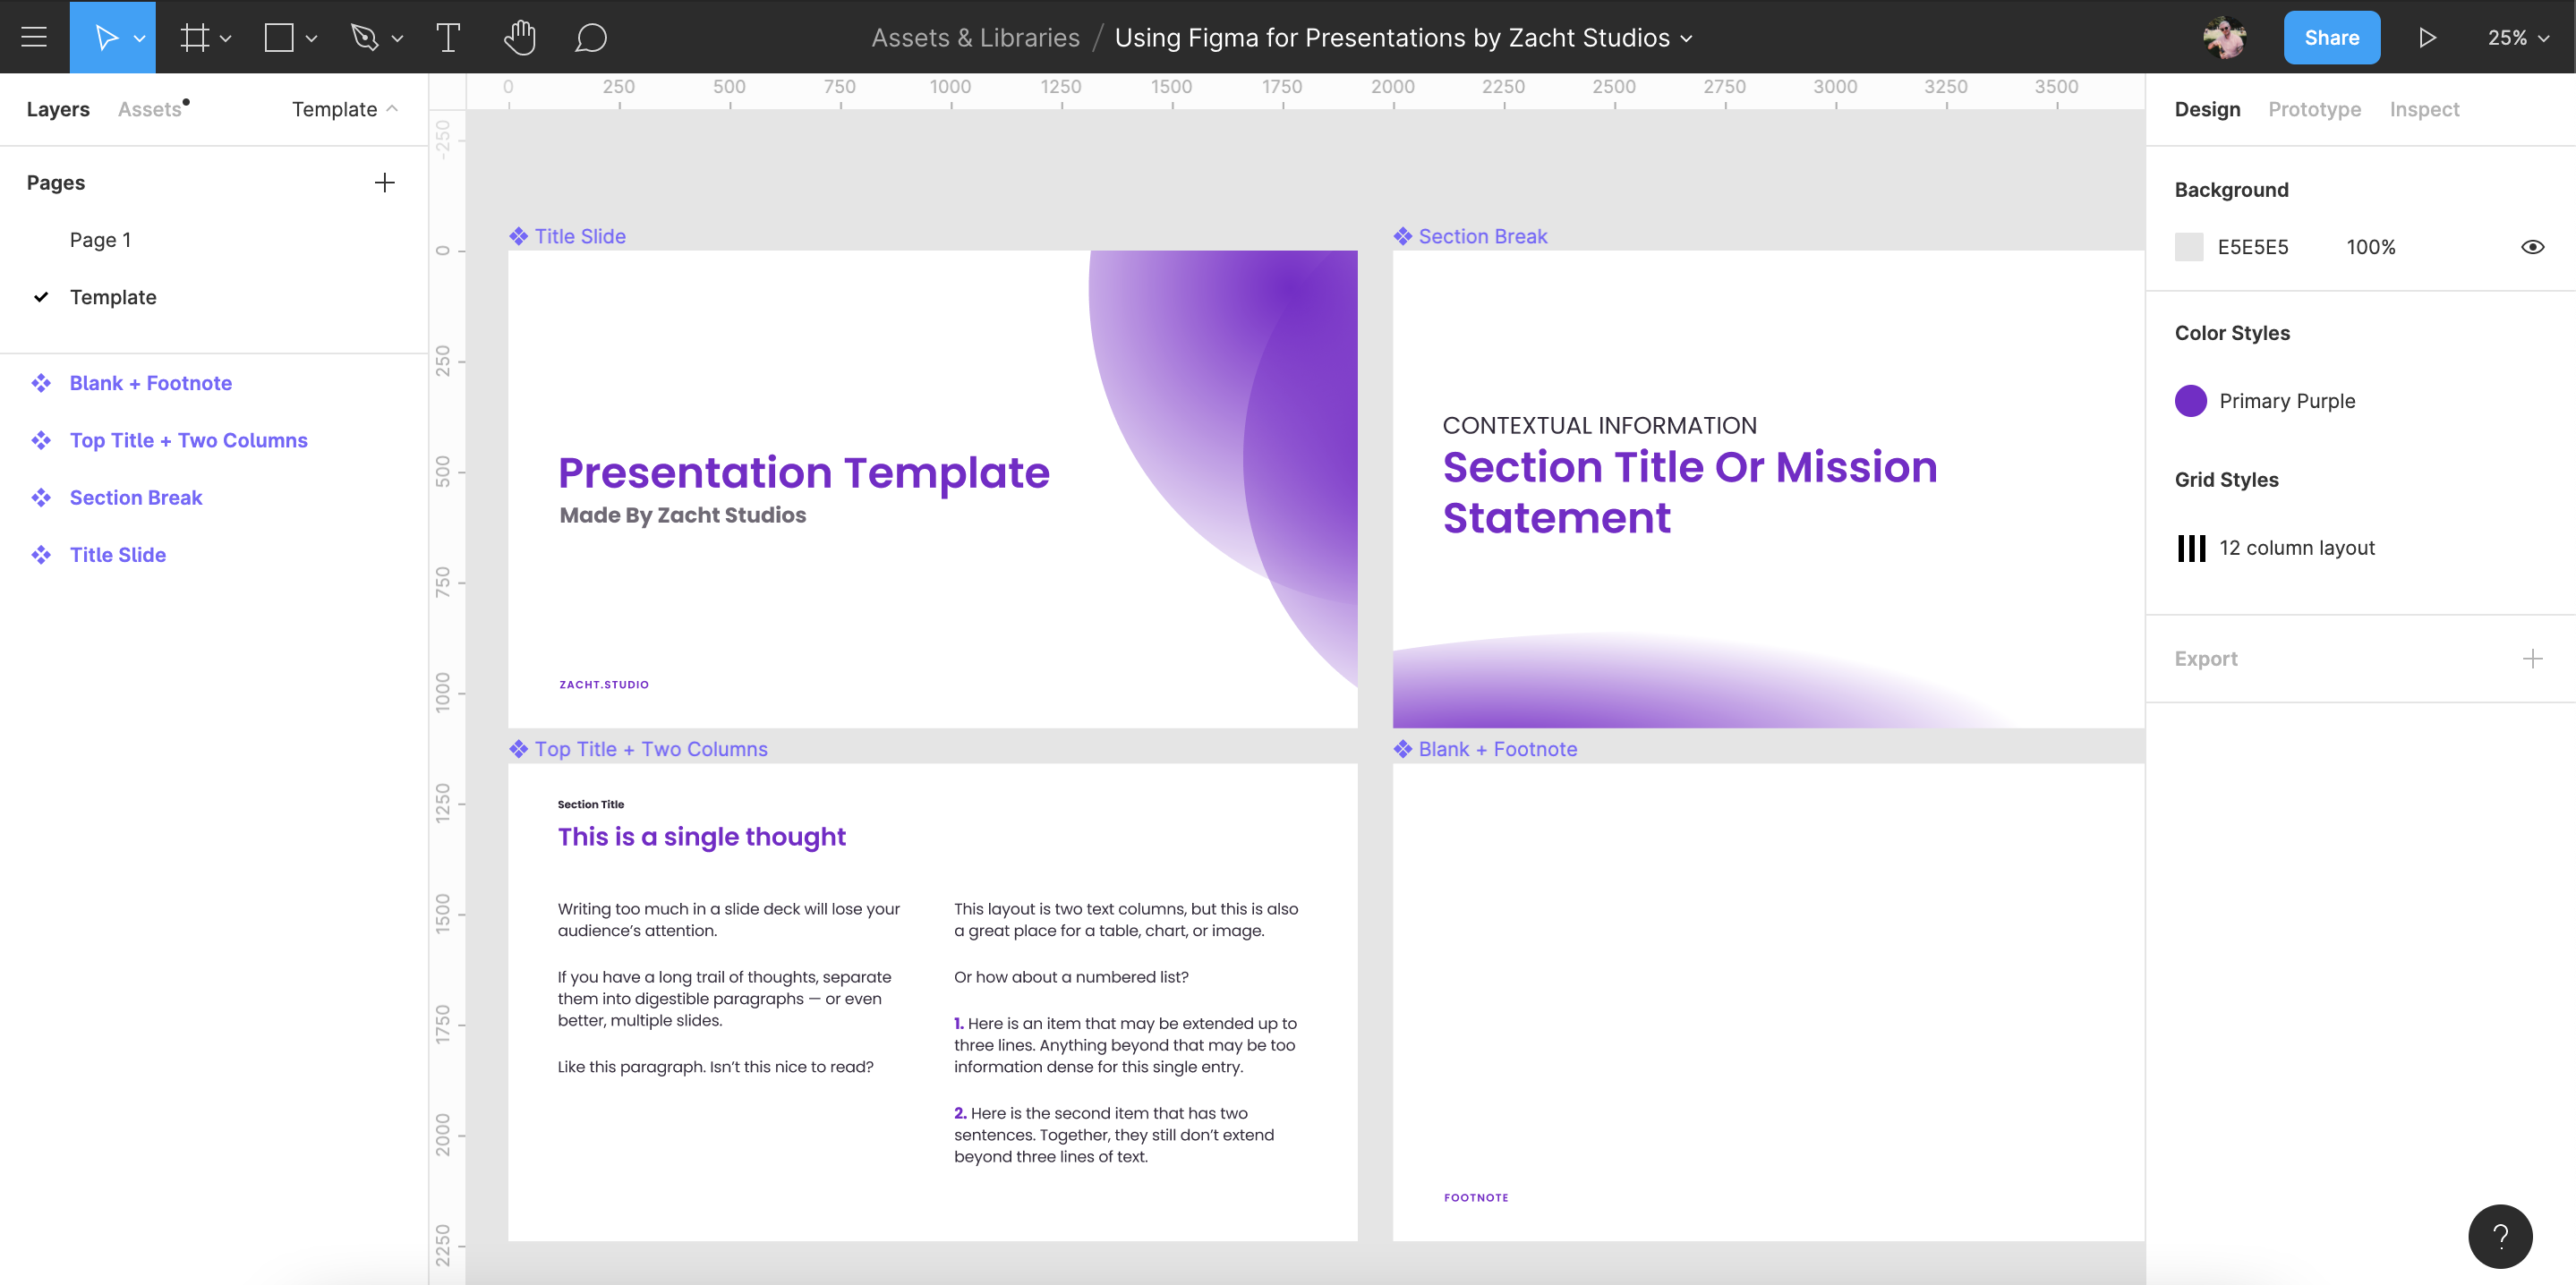 Using Figma for Presentations: 2021 Update